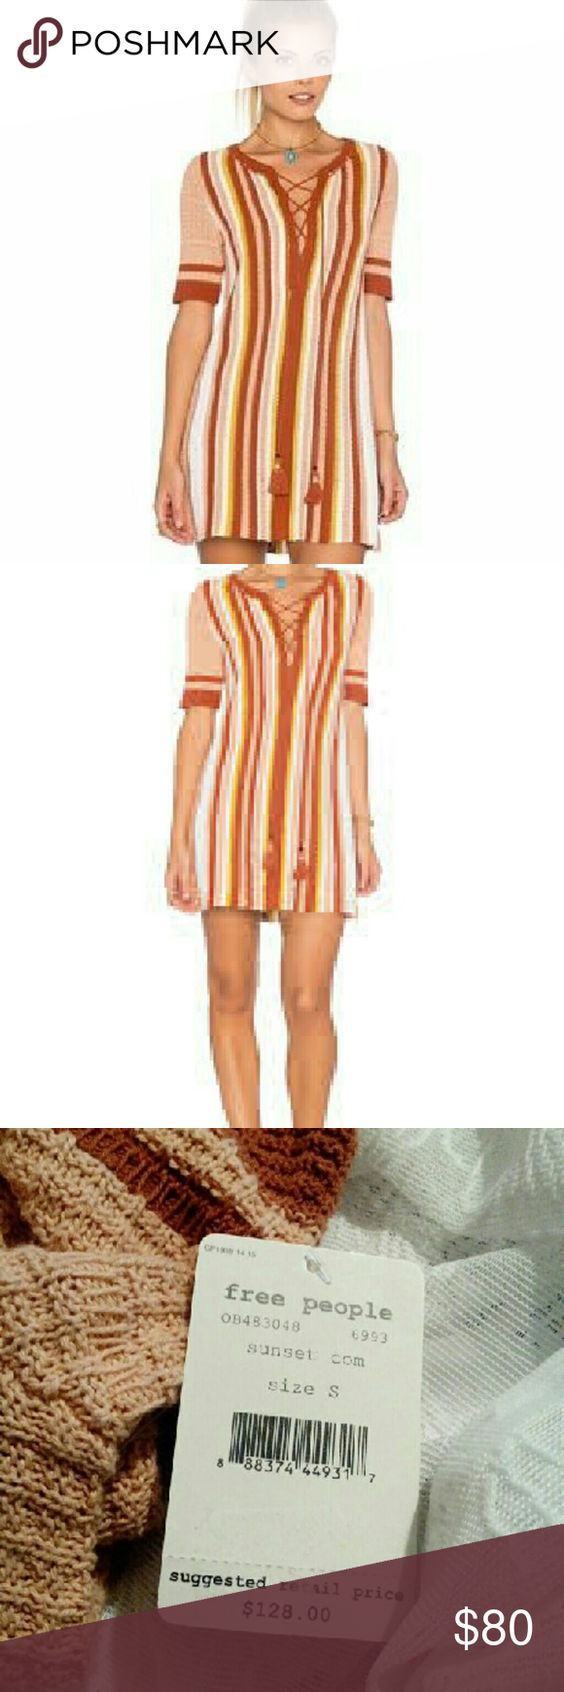 """NEW Free People Sunset Tunic Dress S4-6 Beautiful Sunset Tunic Dress By Free People. Can be worn as either a tunic or short dress. Sweater like knit. Gorgeous earth tones in the stripes.? Front lace up closure with a tassel fringe trim. Size Small 4-6  Retail $128 Our Price $80 Free shipping!  Size Small. 4-6 Bust 35""""-36"""" Natural Waist 27""""-28"""" Drop Waist 29.25""""-30.25"""" Hips 37""""-38""""  Broom Closet is a registered retailer. We receive our merchandise from wholesalers, manufacturers, and…"""